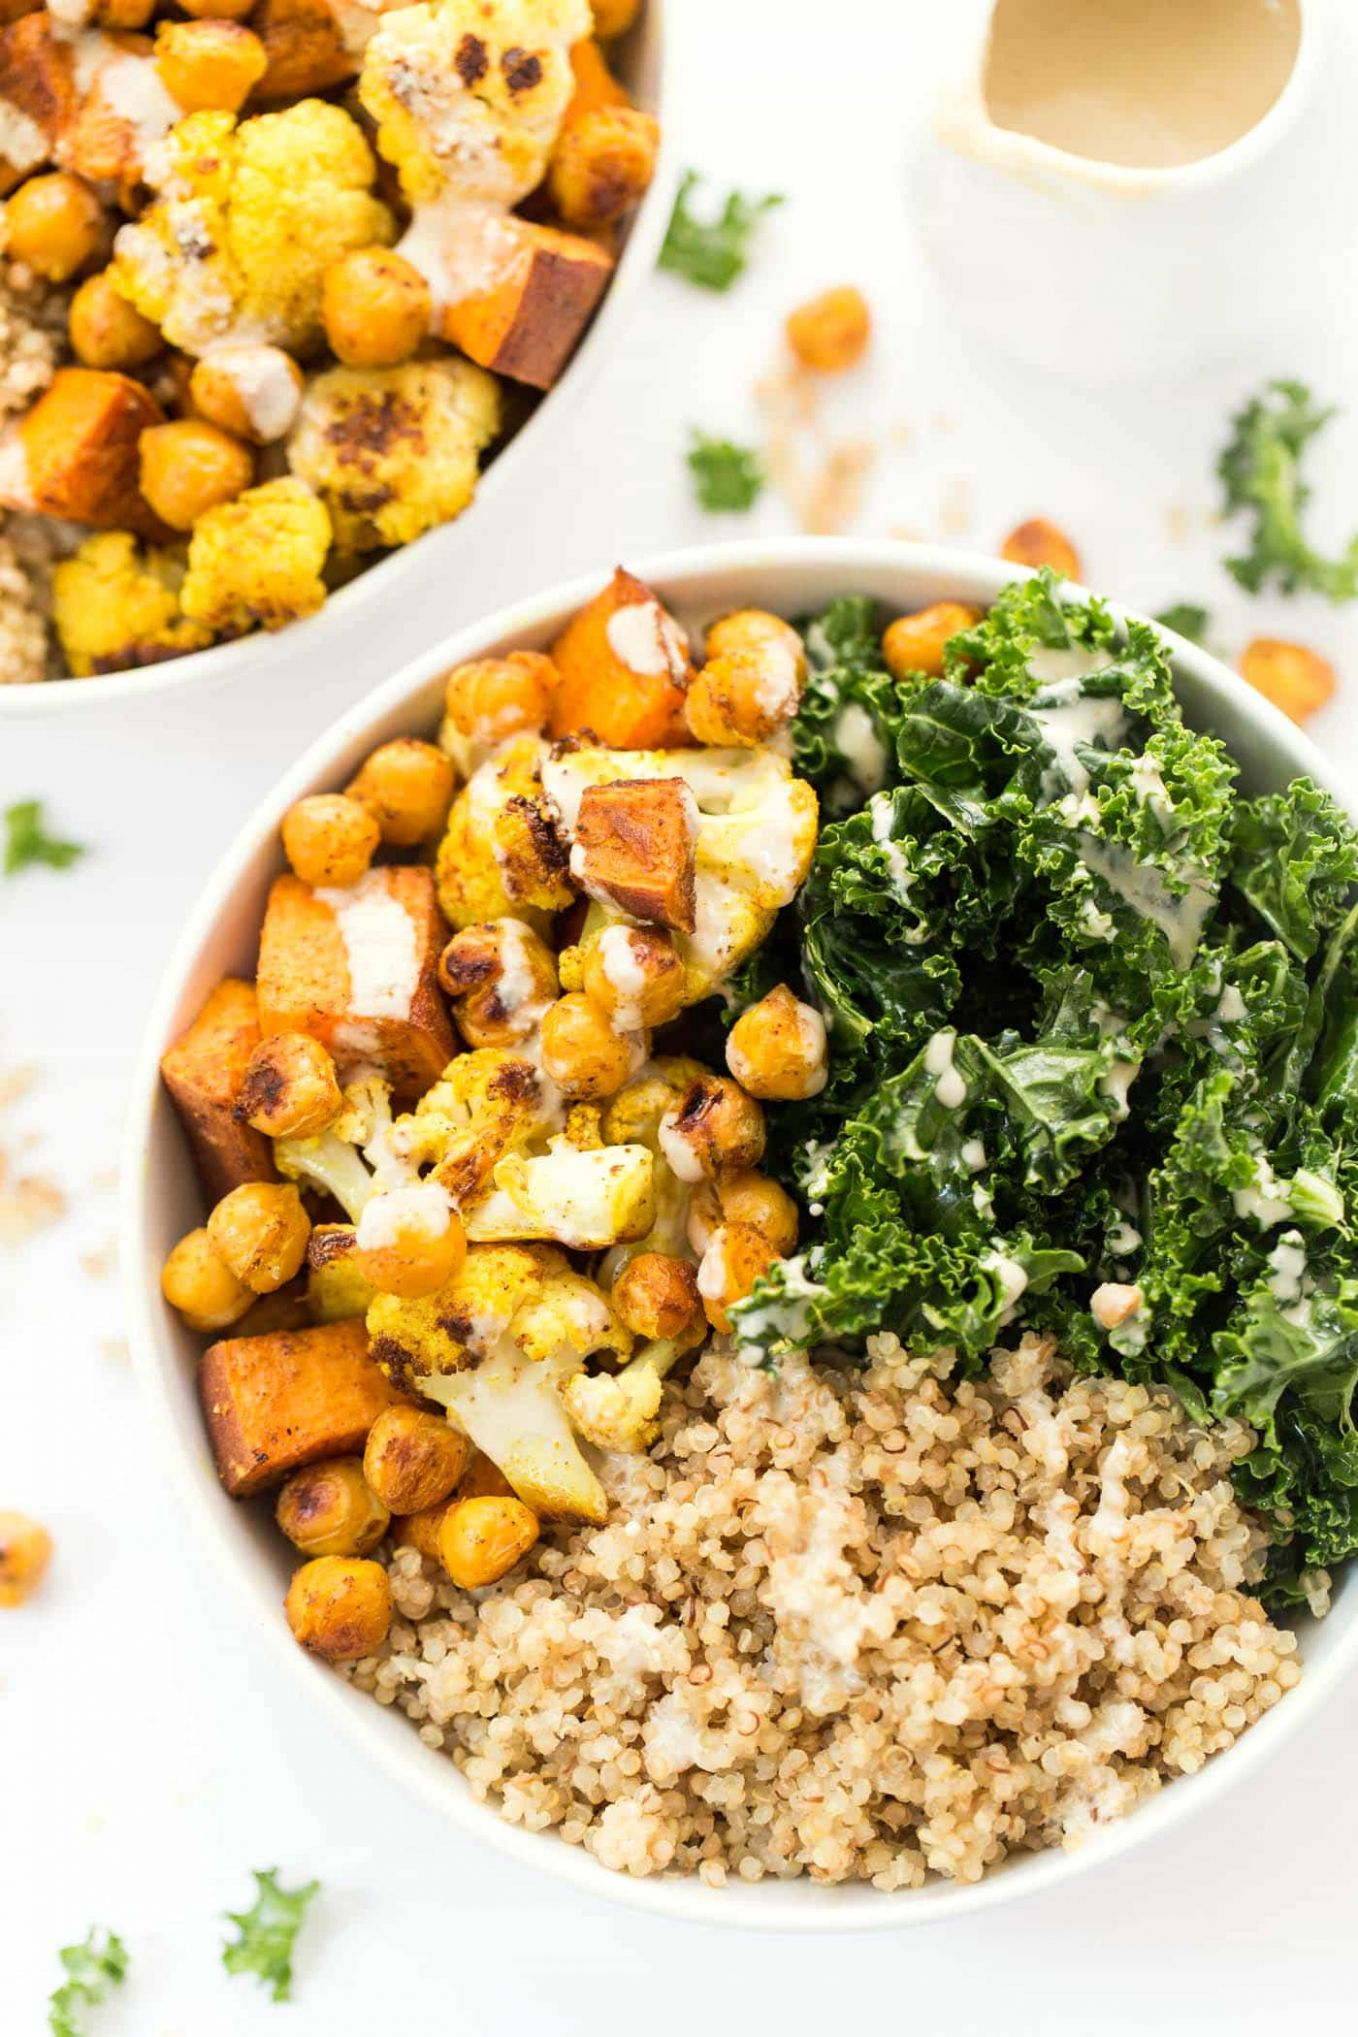 Curry Roasted Vegetable Quinoa Bowls - Recipe Vegetarian Quinoa Bowl